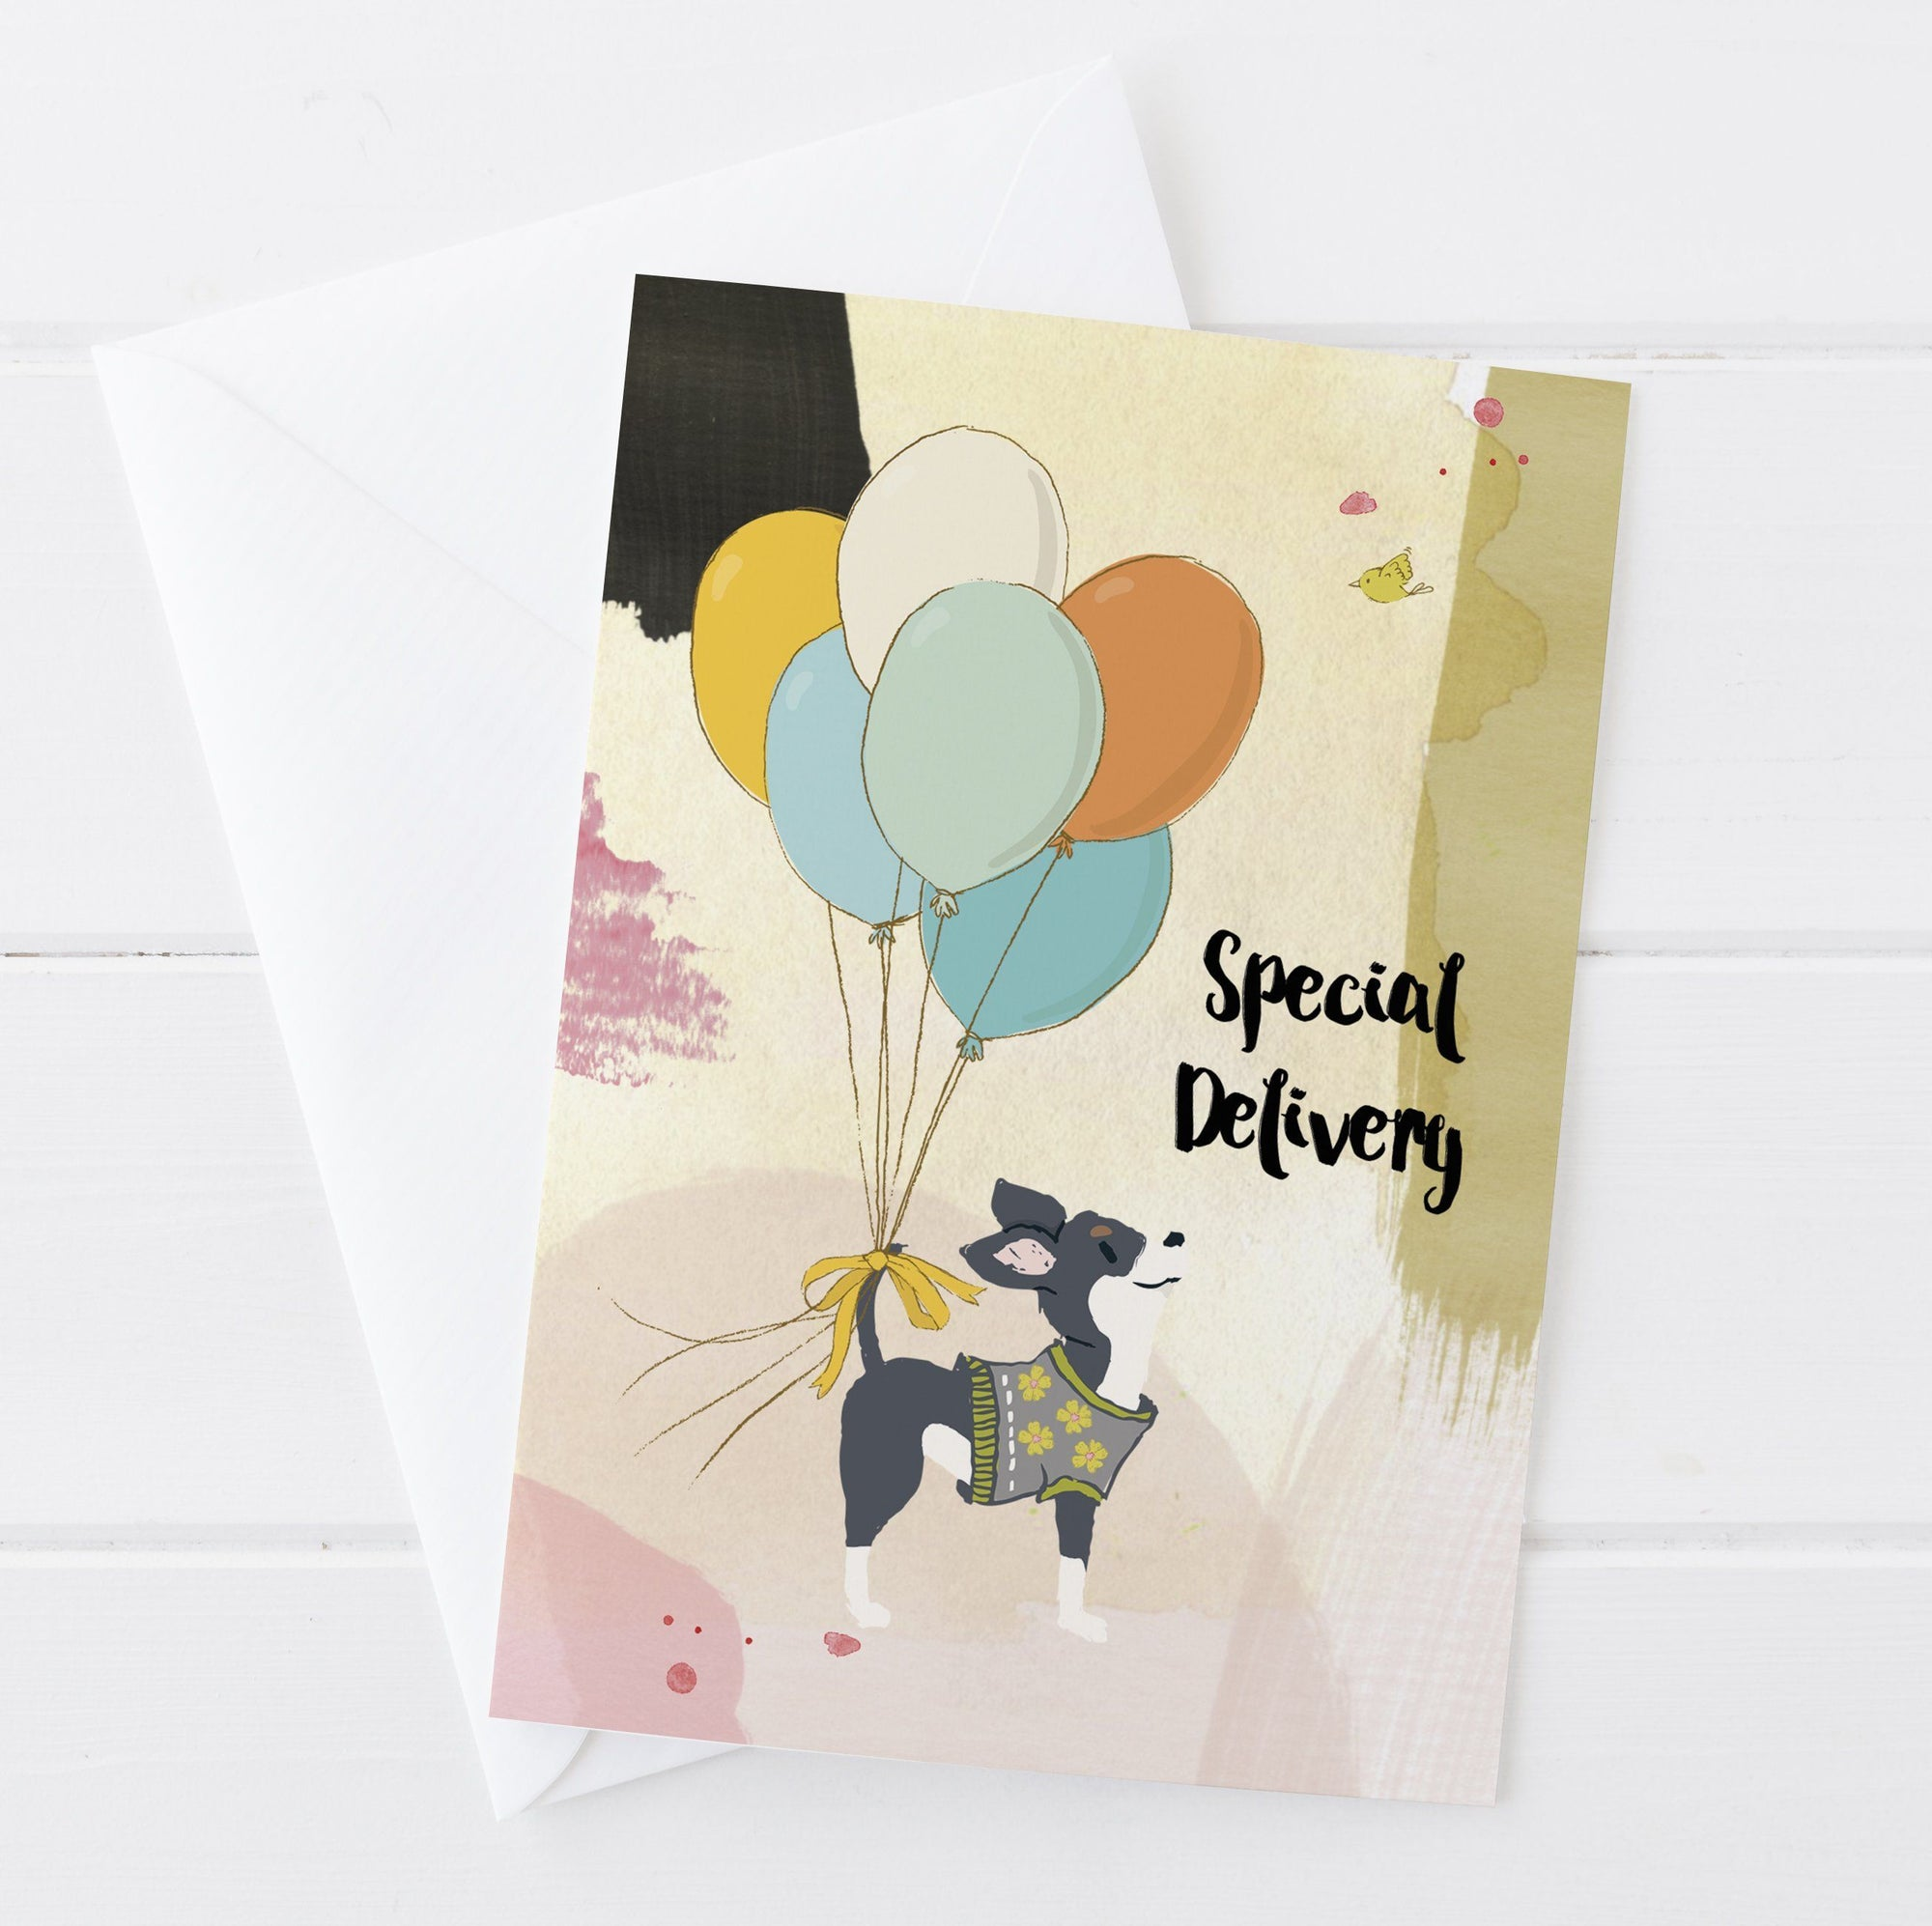 Special Delivery Greetings Card